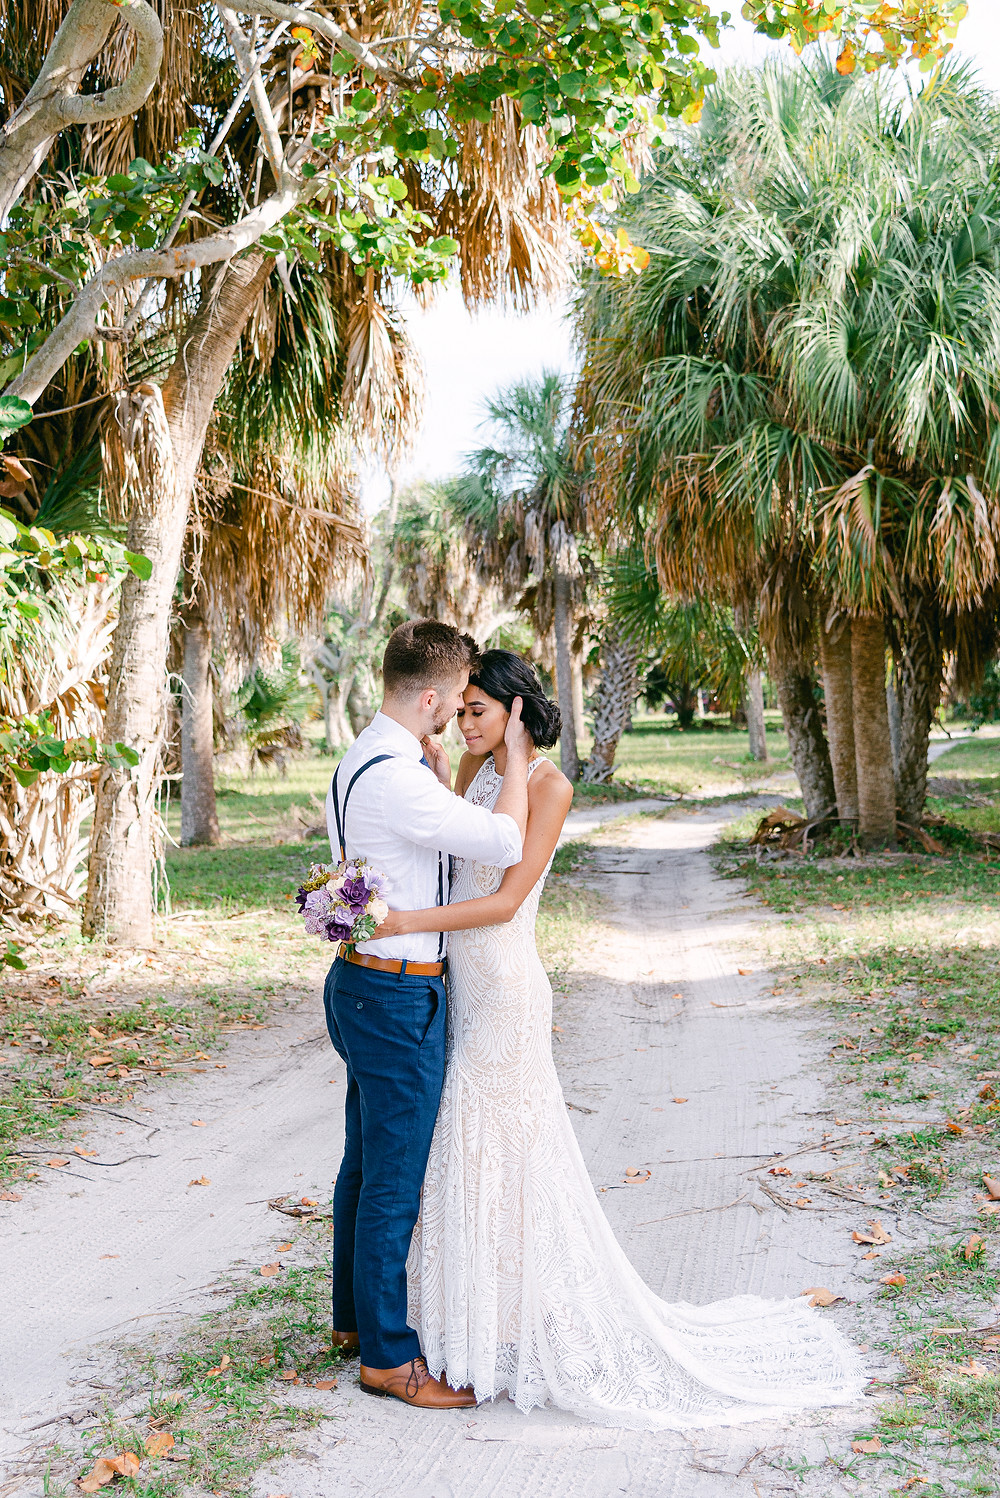 Nina Bashaw Photography shares elopement photos taken at Fort De Soto state park in St Pete